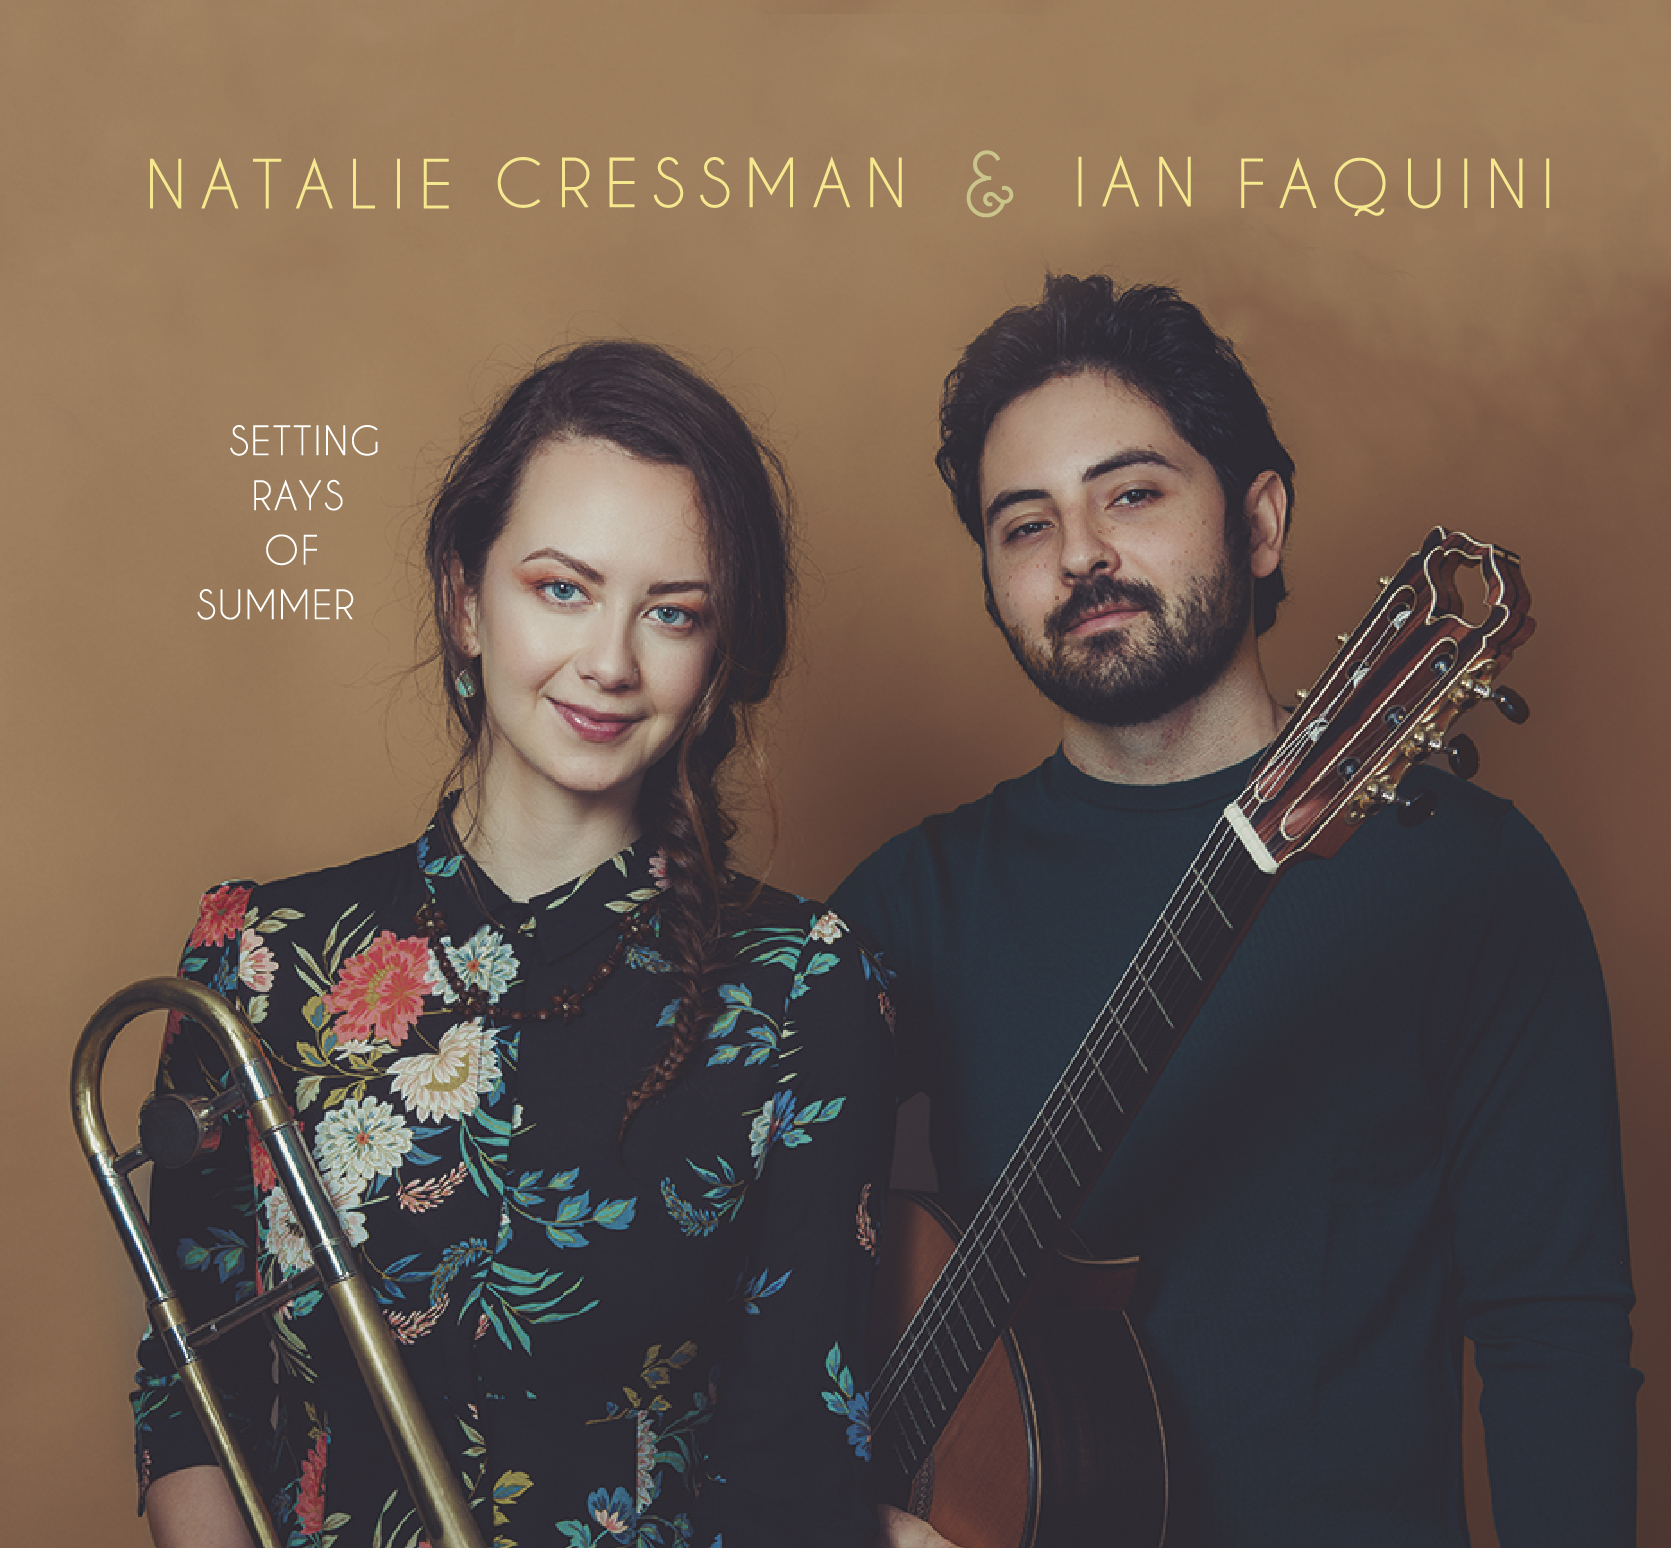 "NEW RELEASE: Natalie Cressman & Ian Faquini to Release ""Setting Rays of Summer"" on April 5, 2019"